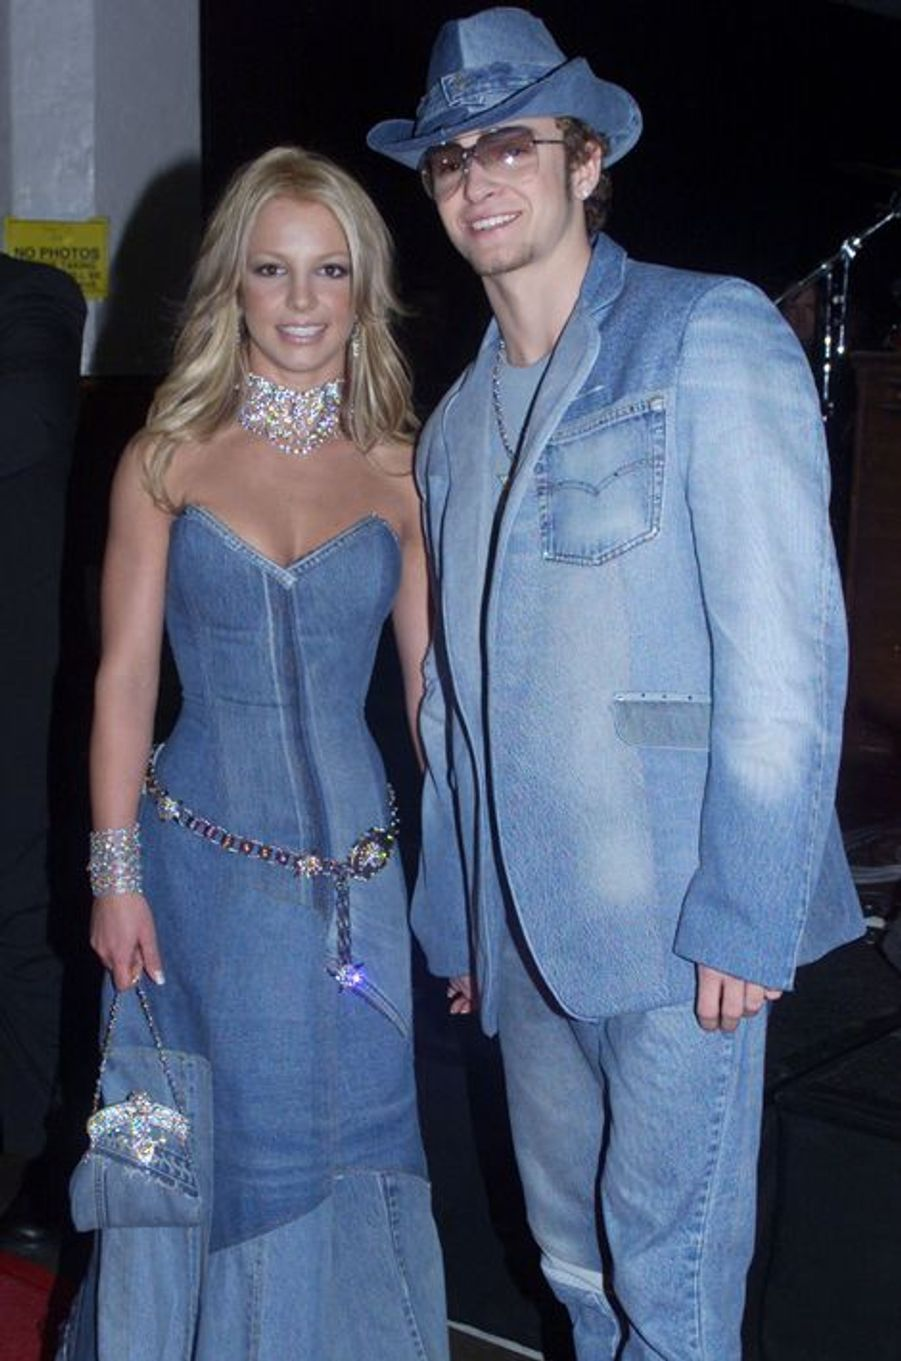 Justin Timberlake et Britney Spears aux American Music Awards, 8 janvier 2001.